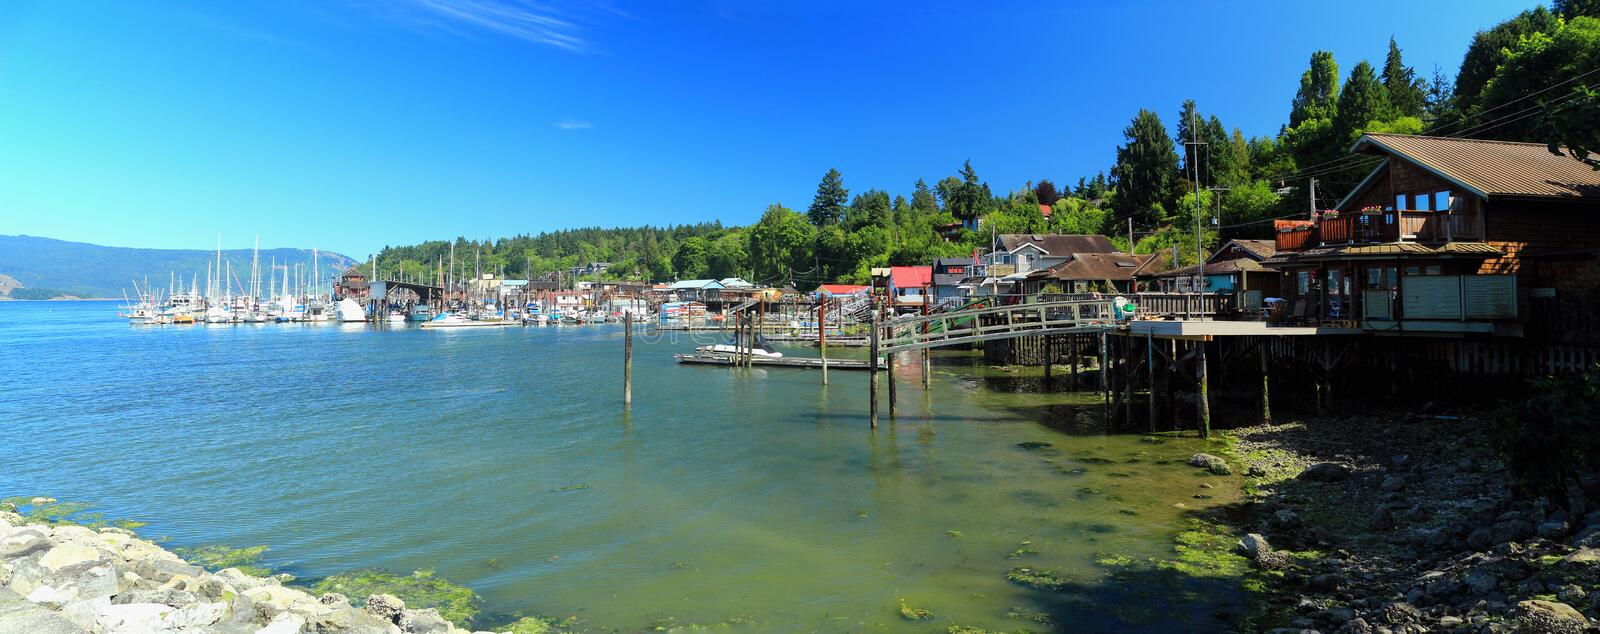 Panorama of Cowichan Bay on Eastern Vancouver Island, British Columbia, Canada stock images